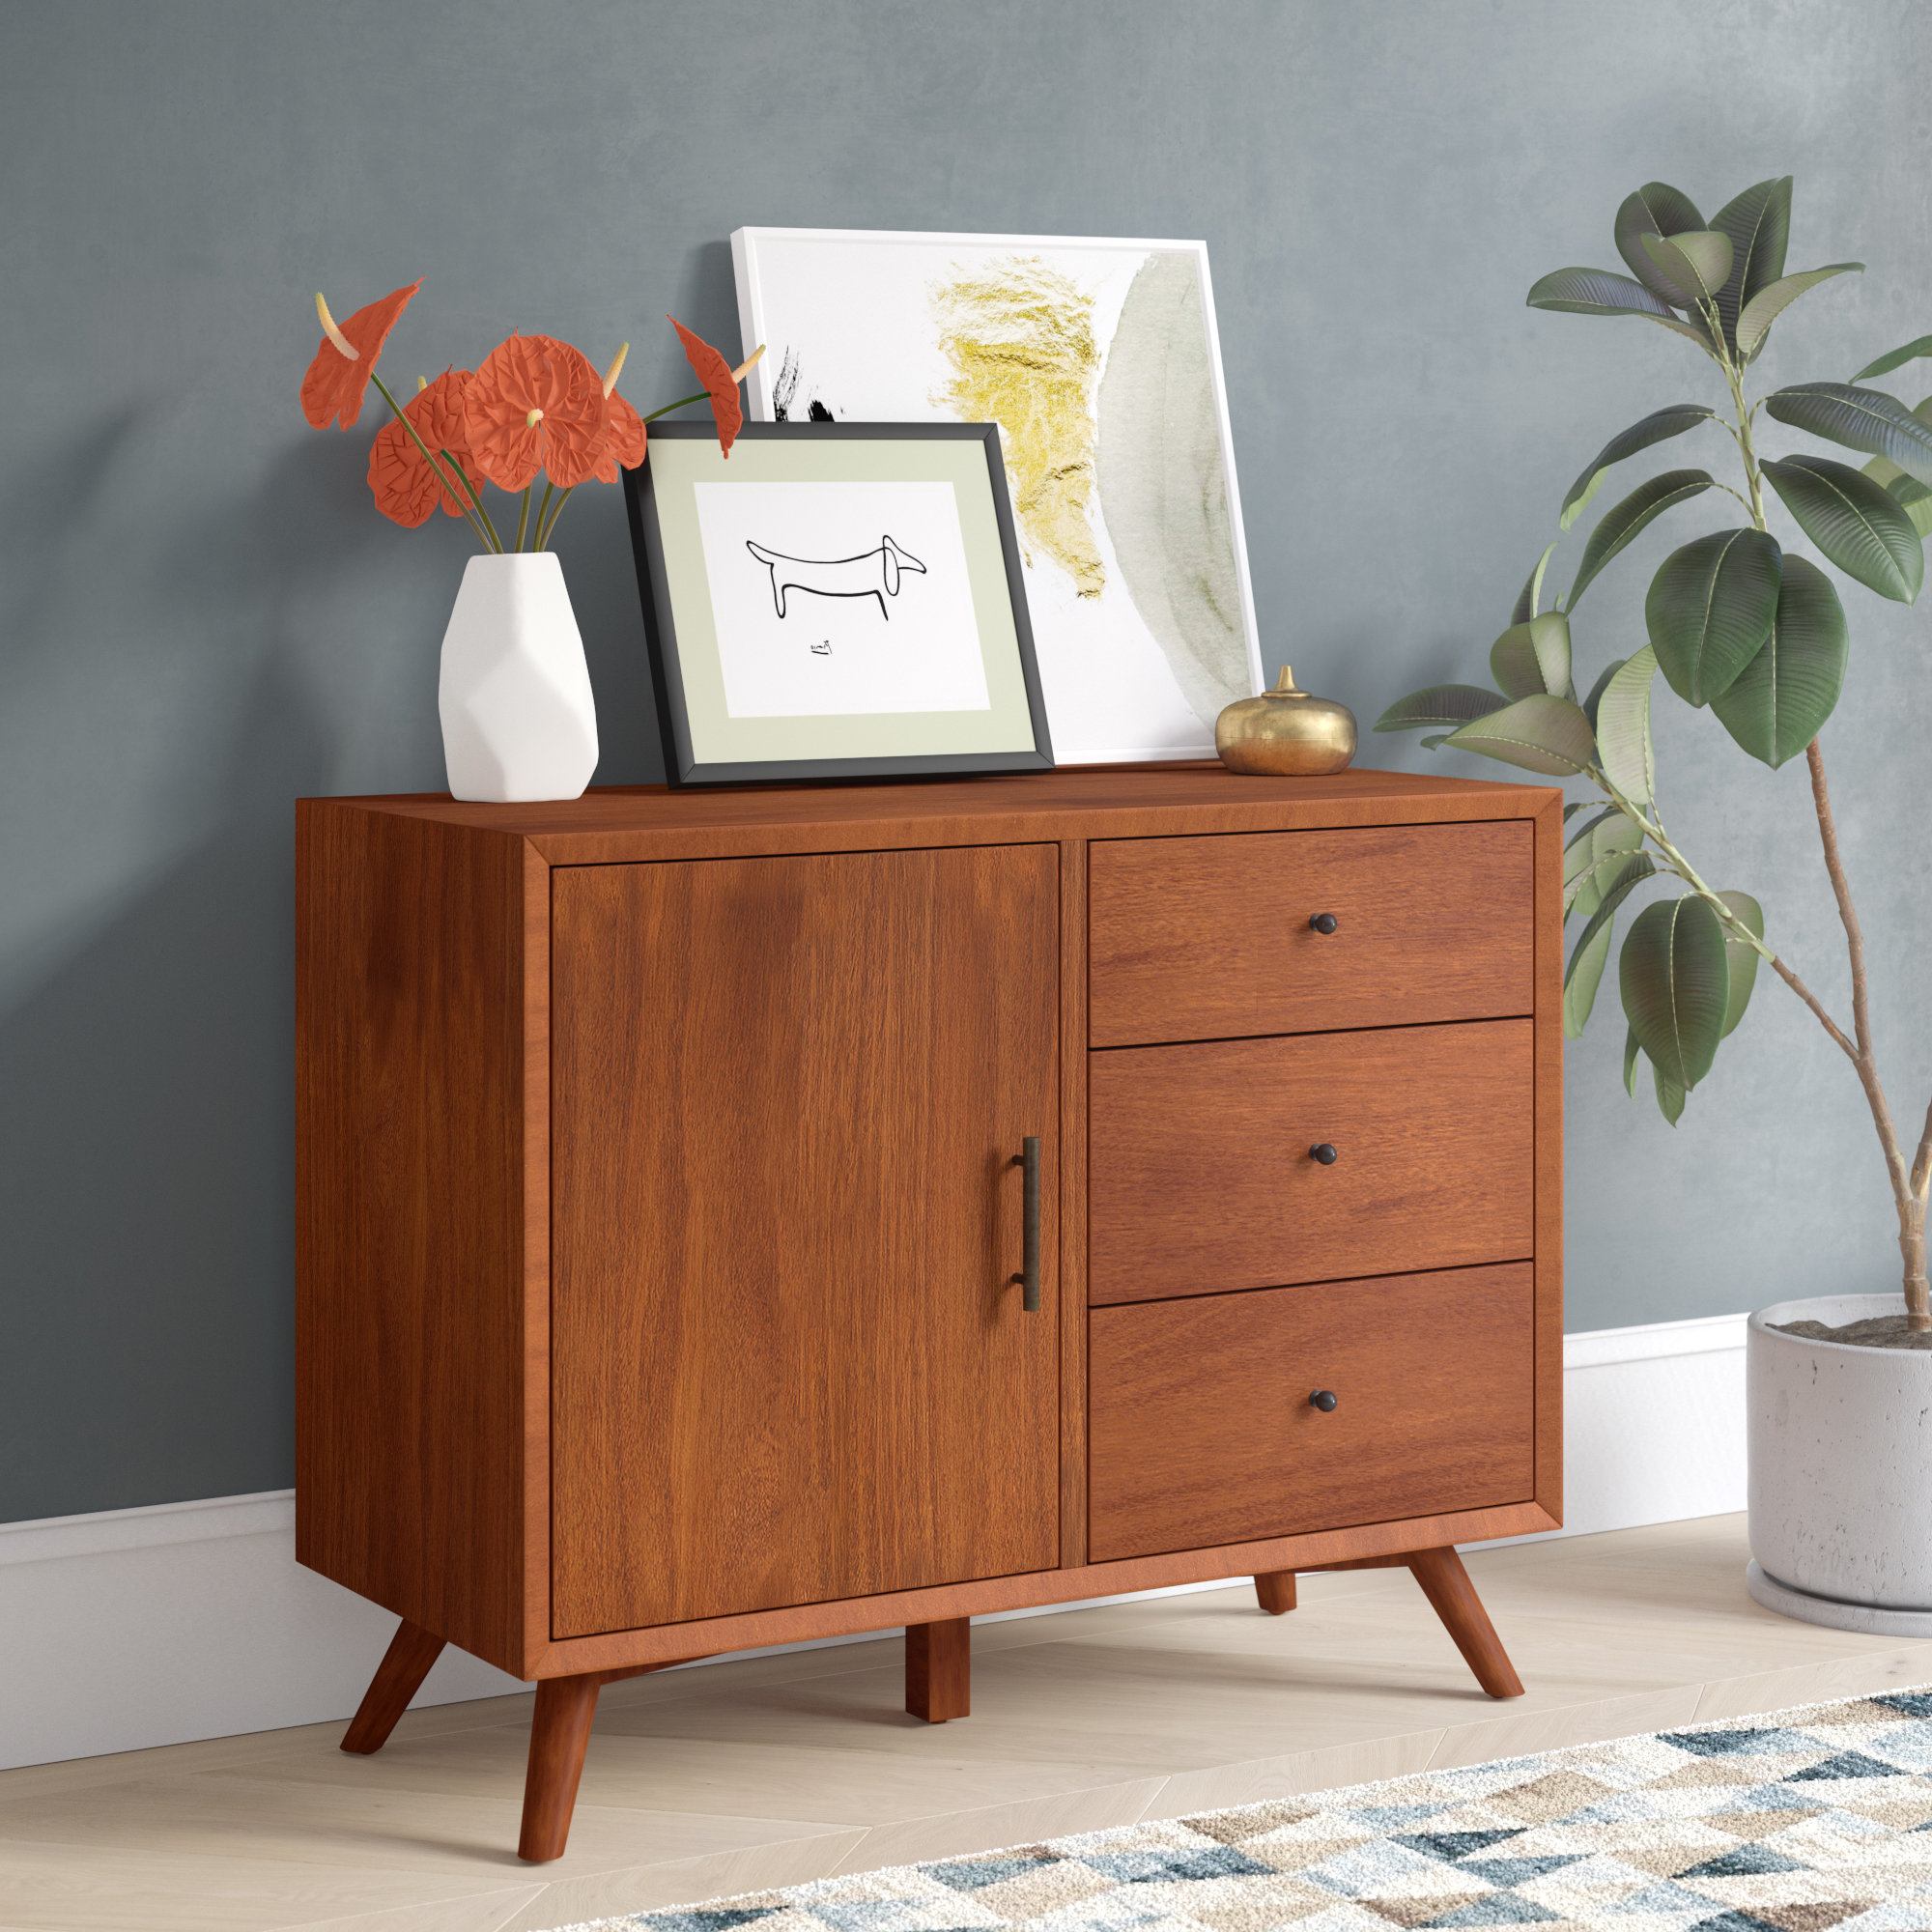 3 Drawer Sideboard | Wayfair For Drummond 3 Drawer Sideboards (View 2 of 20)